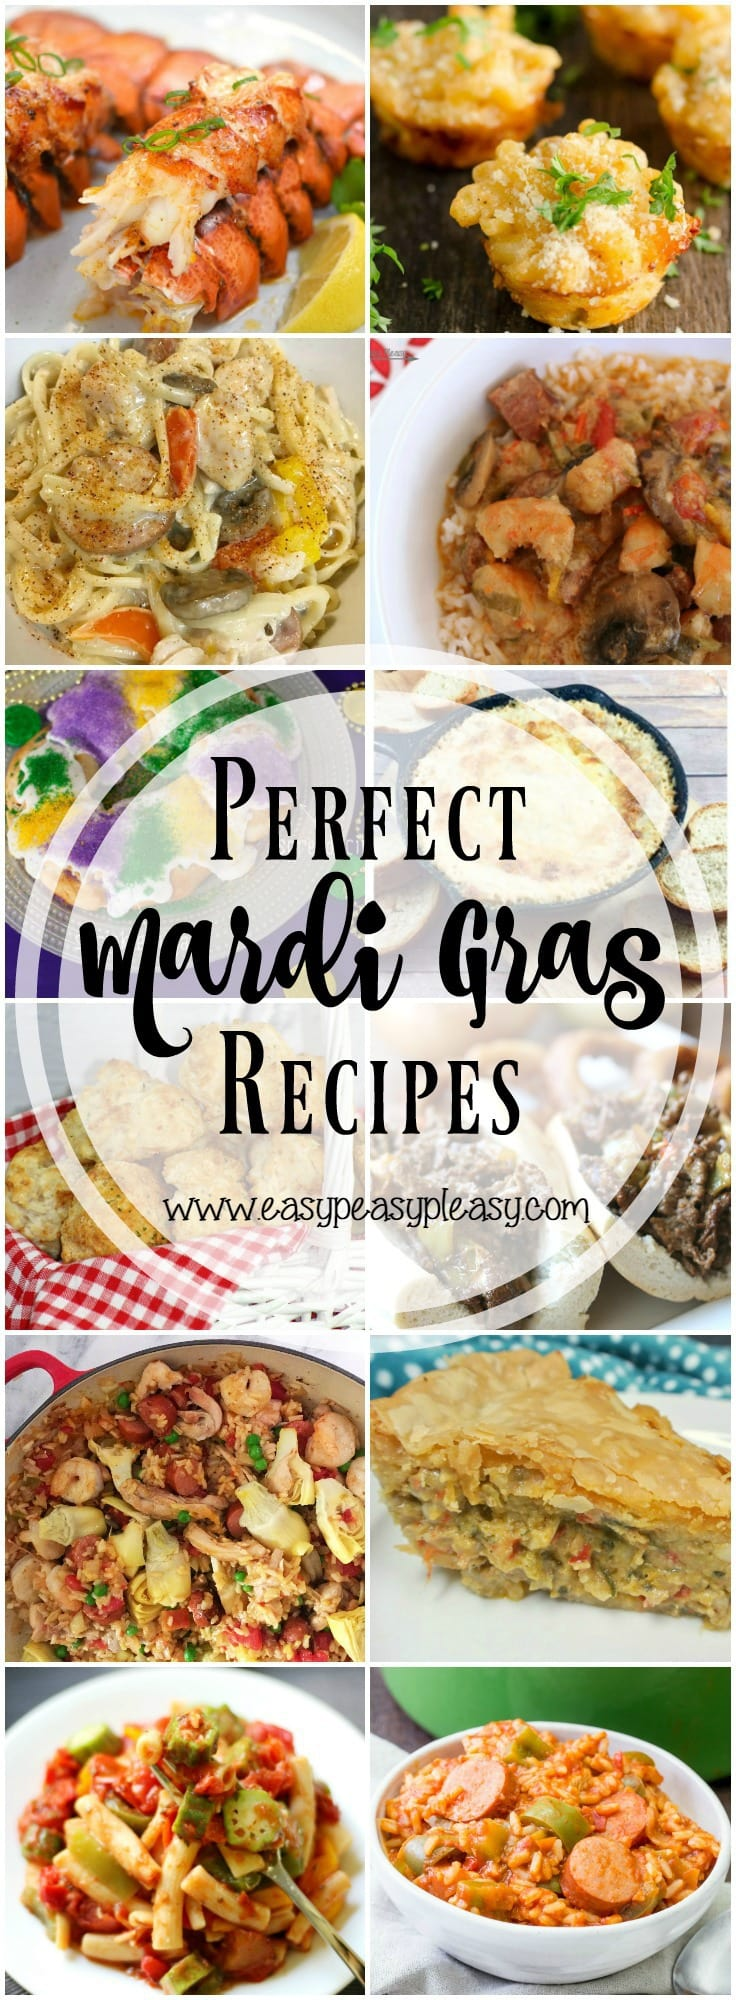 Perfect Mardi Gras Recipes.